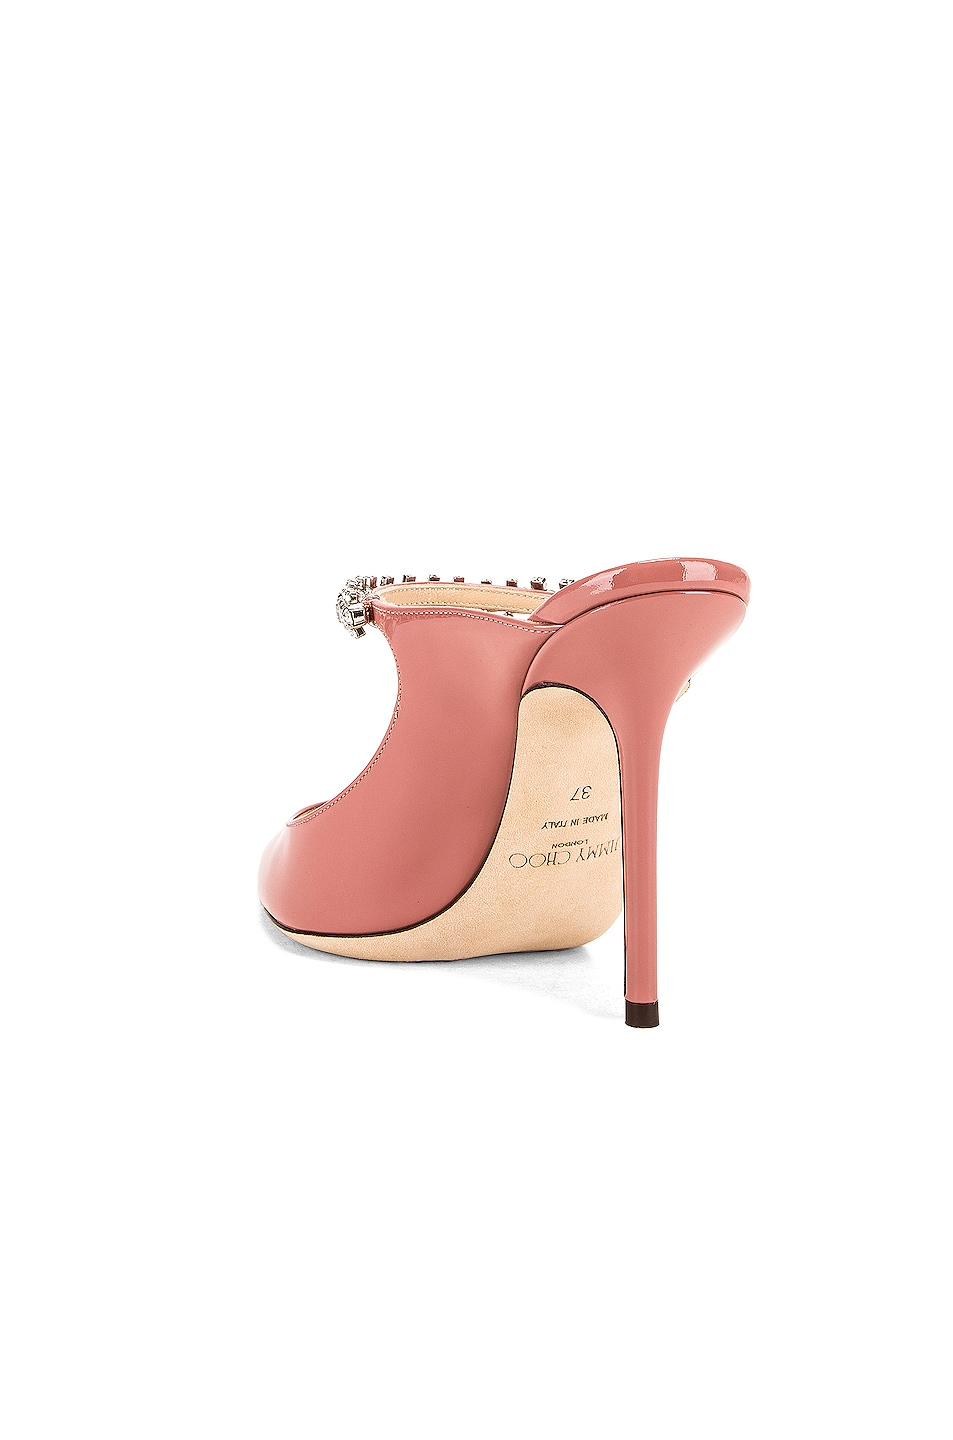 Image 3 of Jimmy Choo Bing 100 Patent Leather Mule in Blush